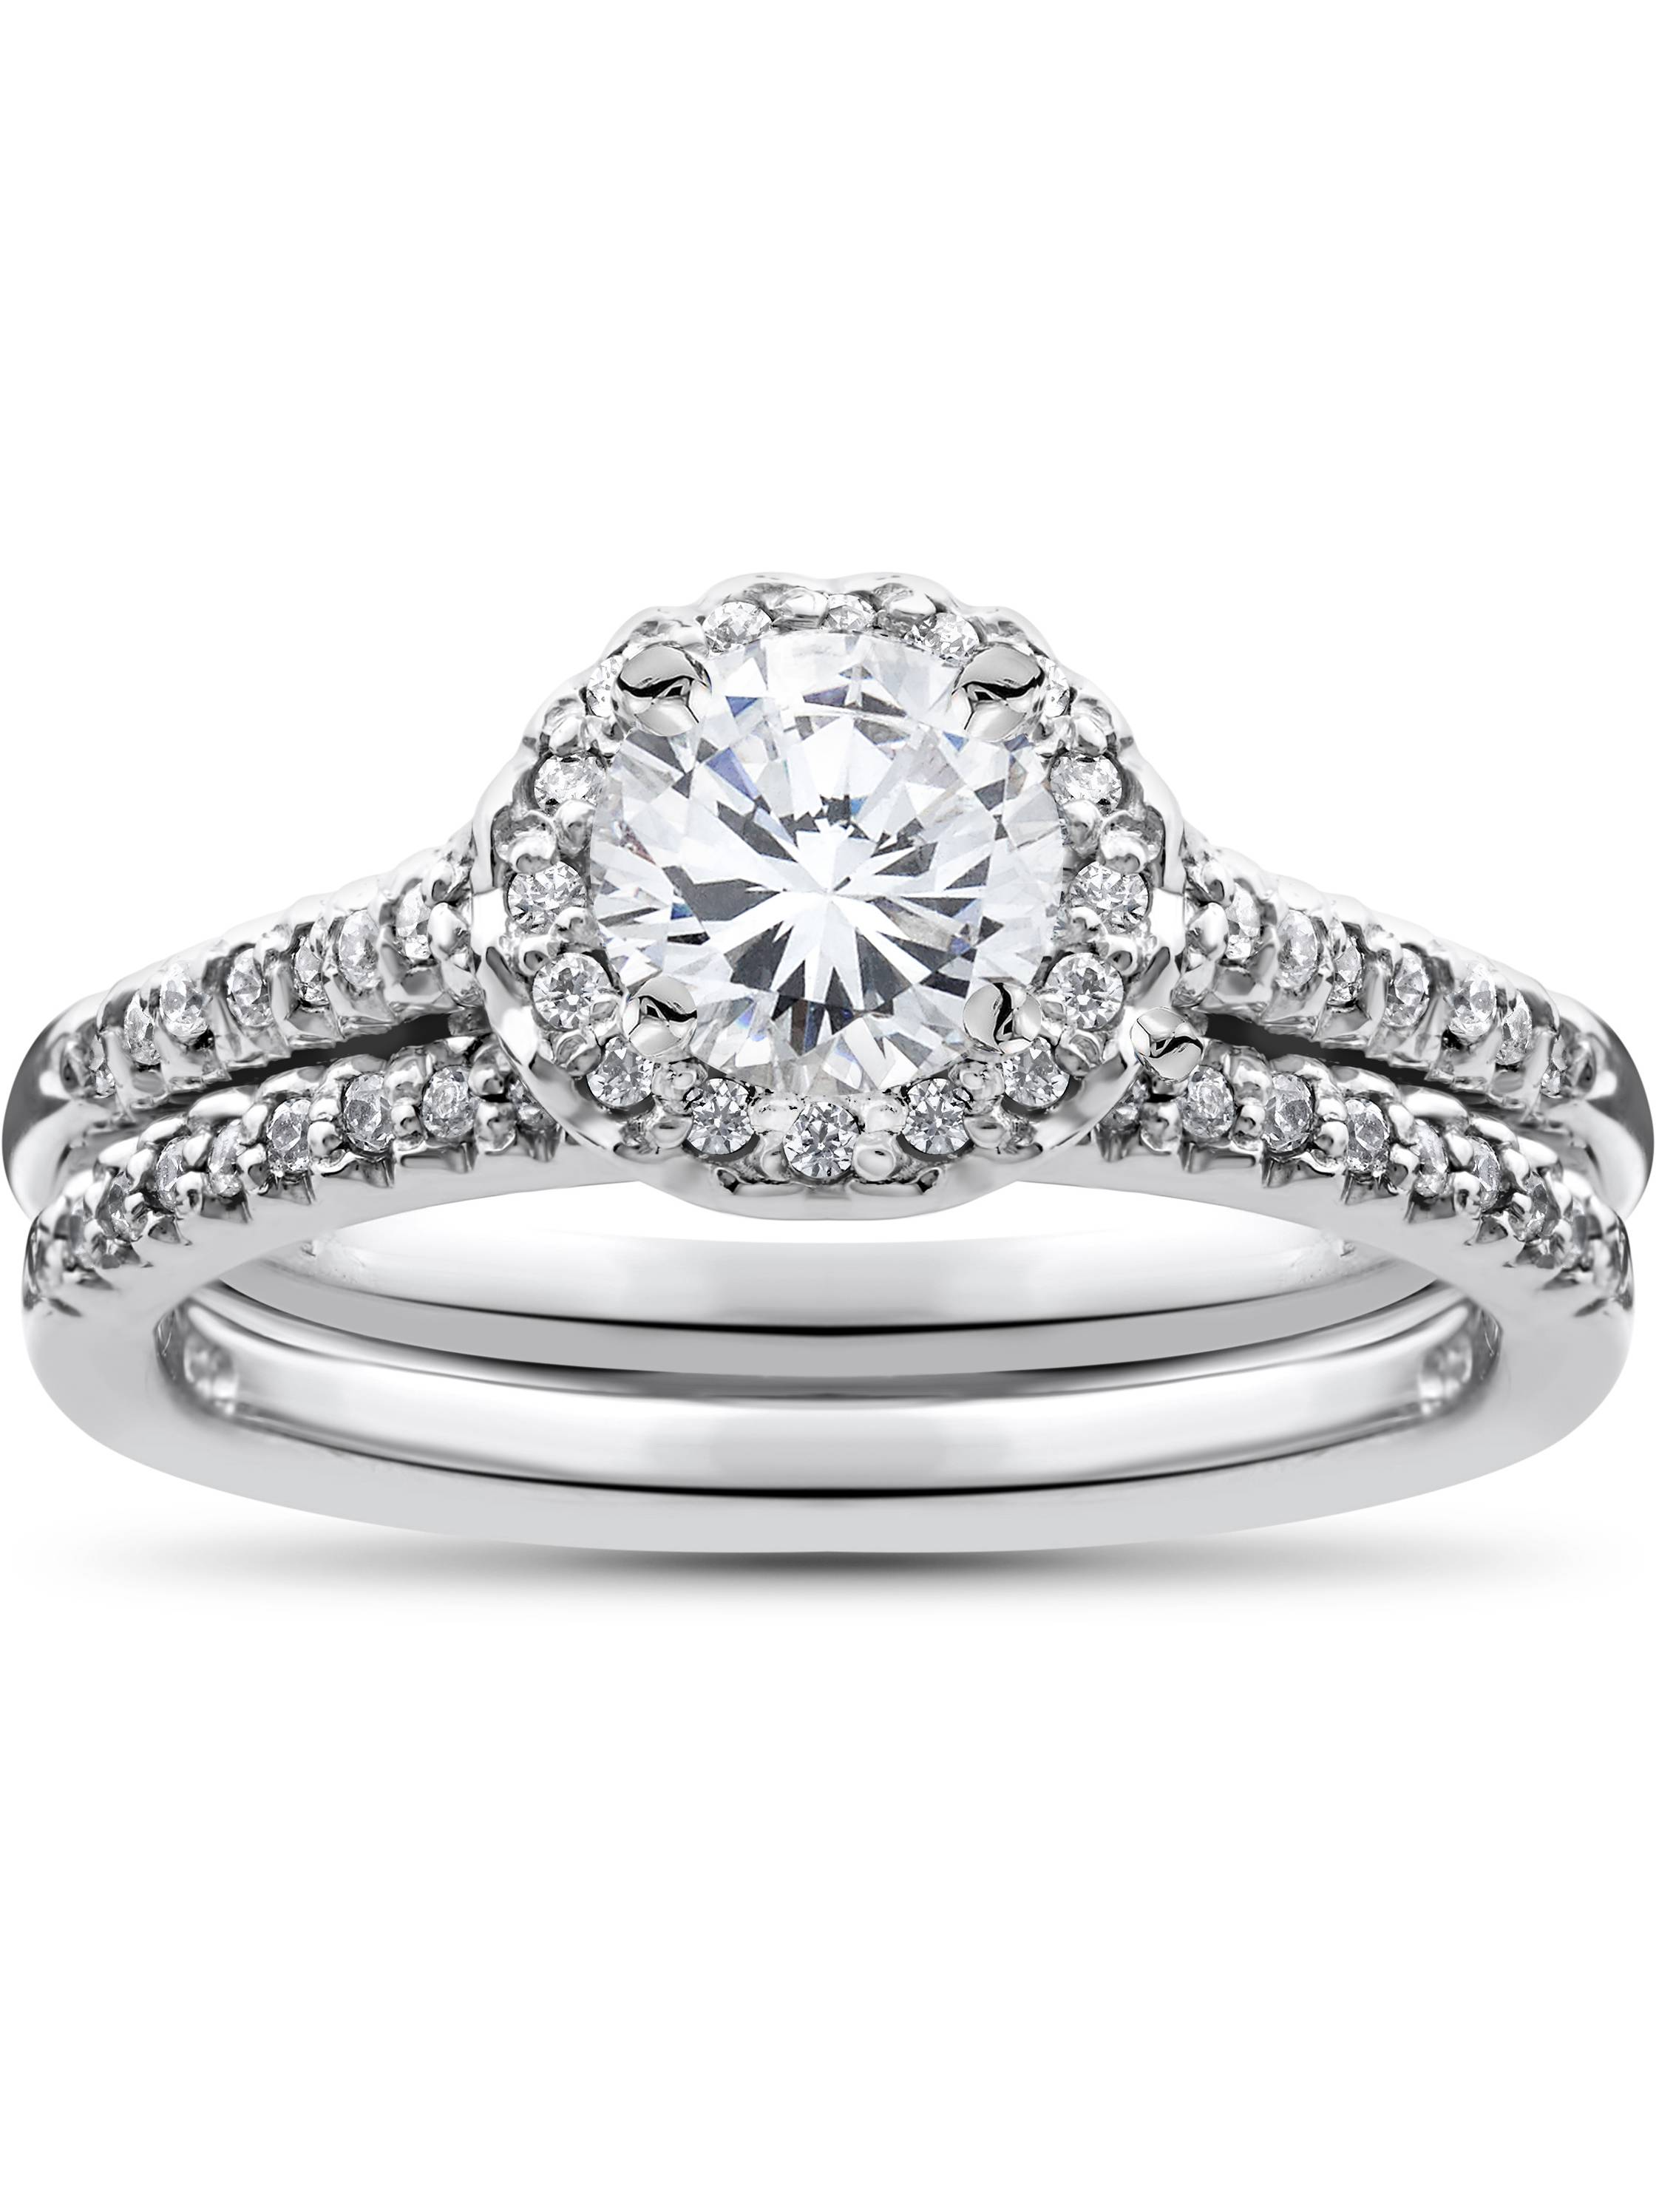 1ct Diamond Halo Matching Soliaire Wedding Engagement Ring Set 10K White Gold